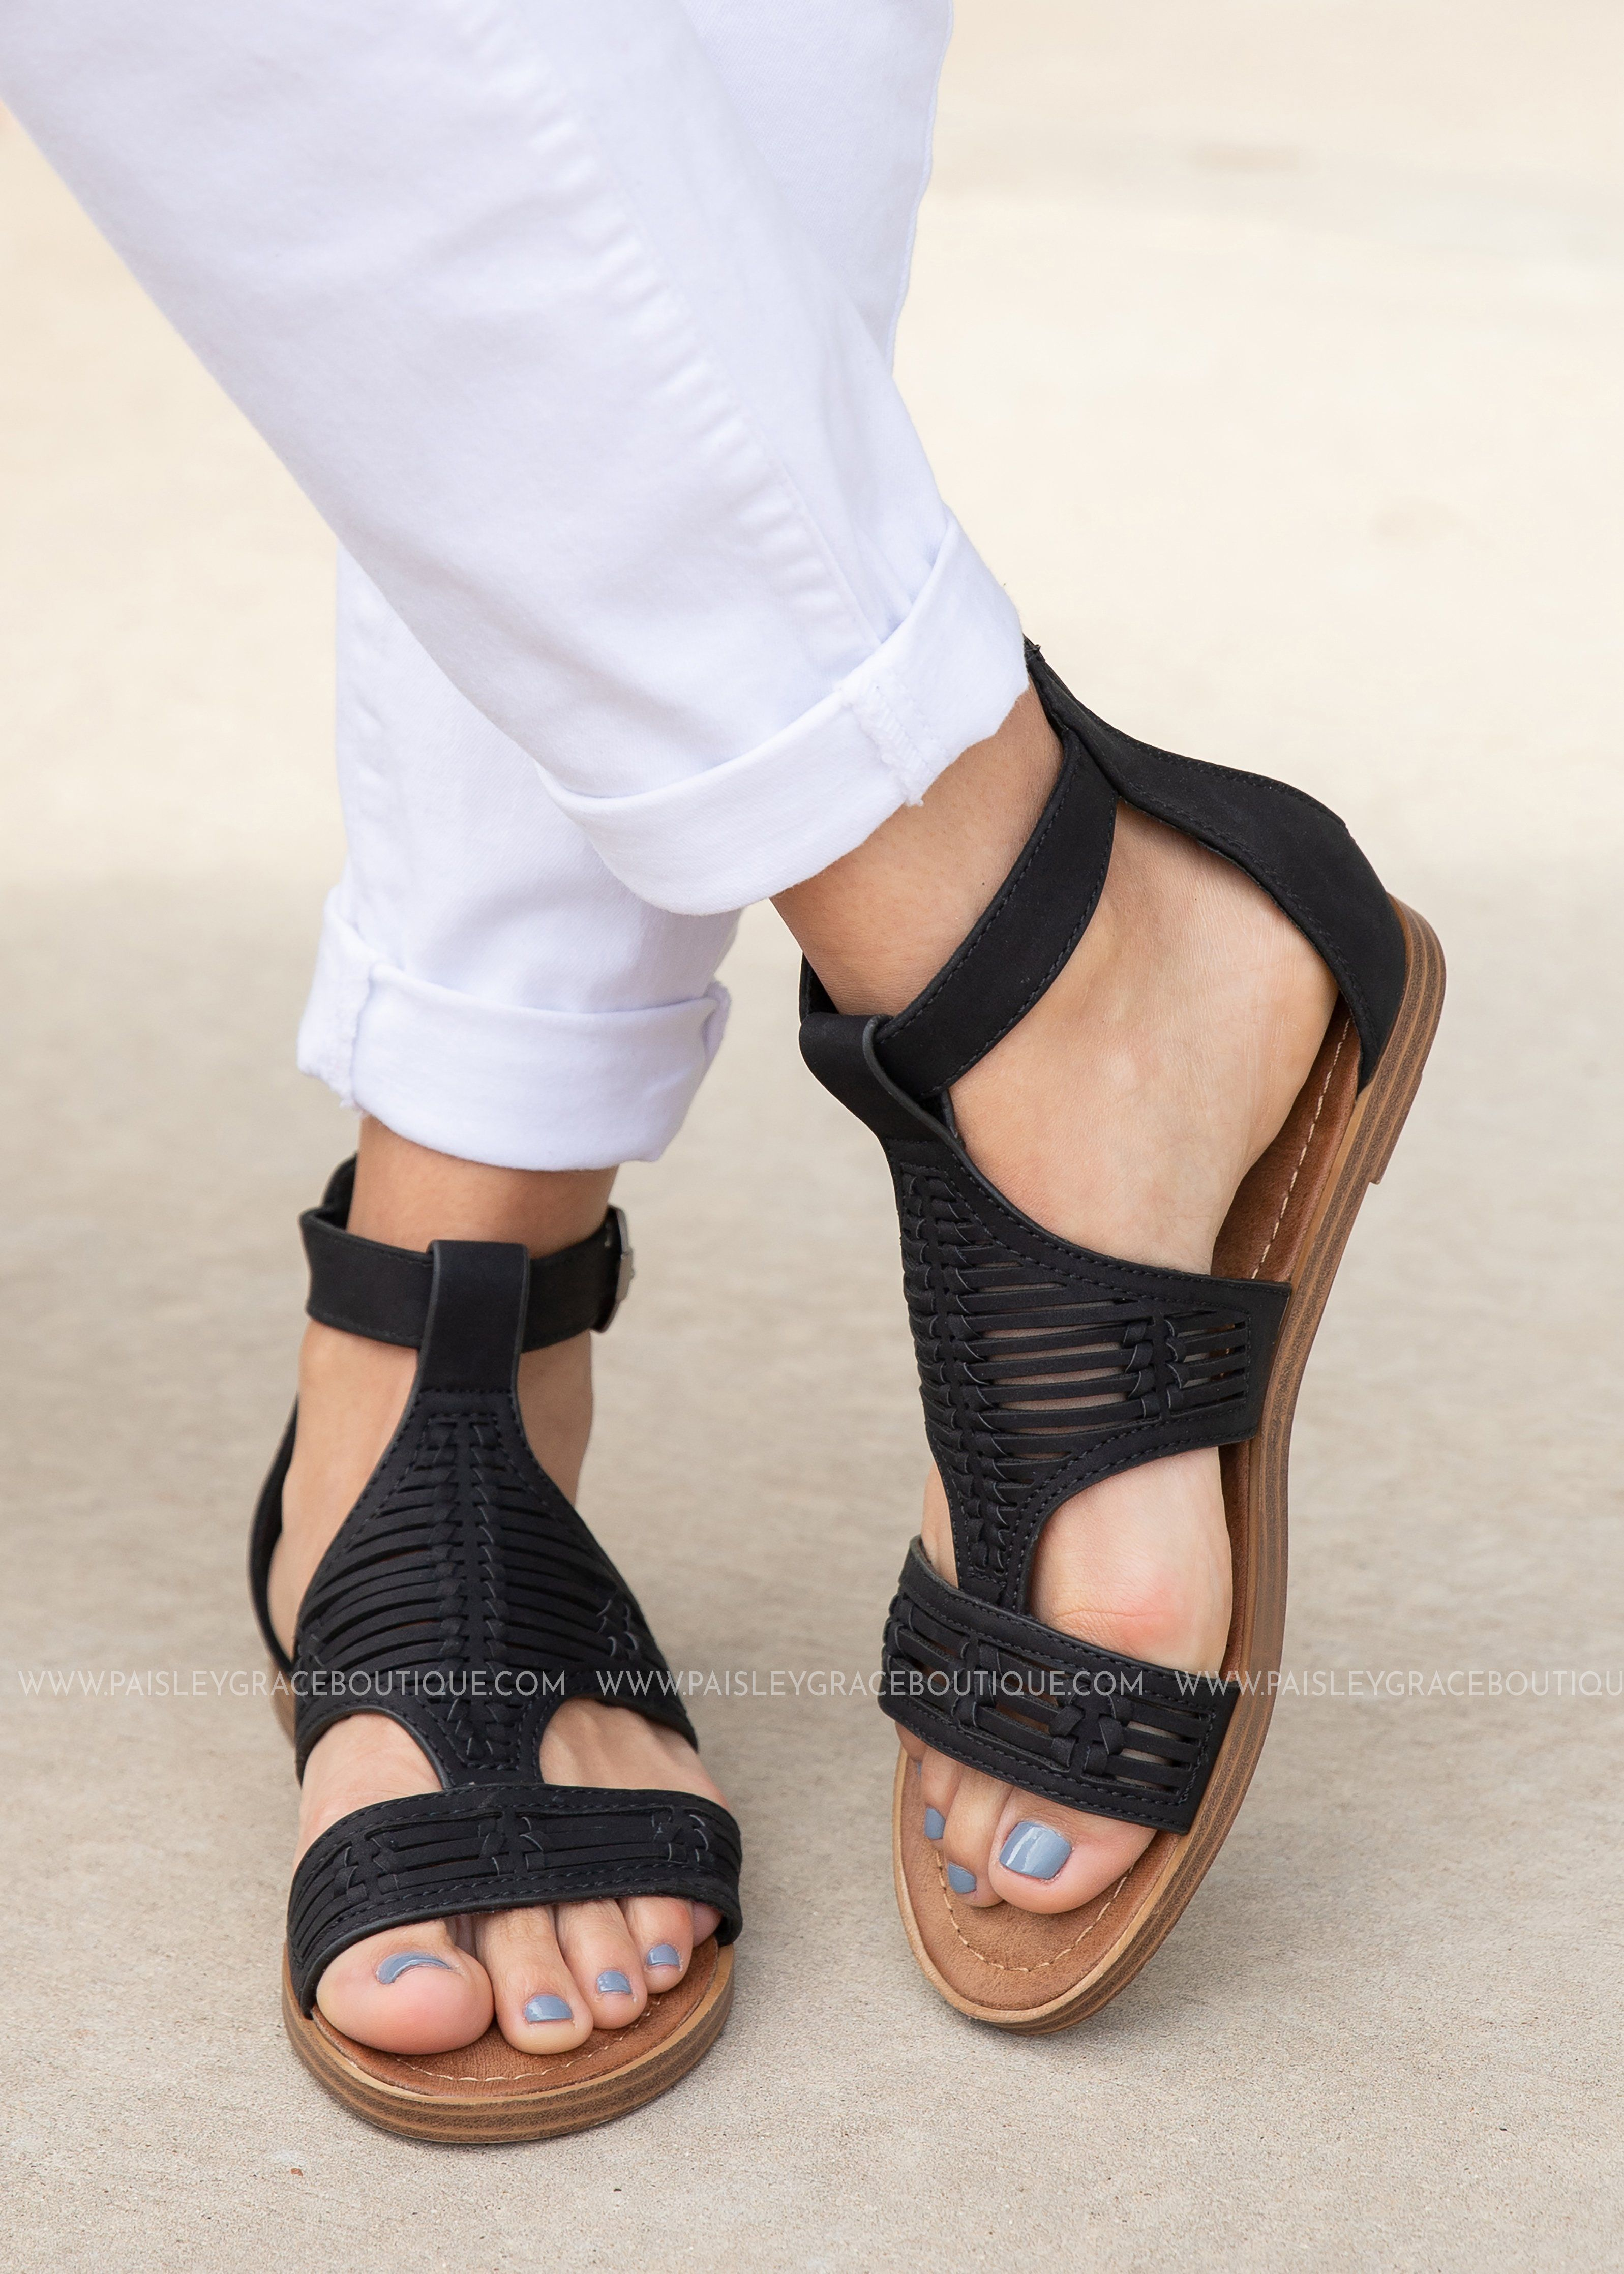 0d795f27ed3 Calista Sandal by Corkys -BLACK from Paisley Grace Boutique